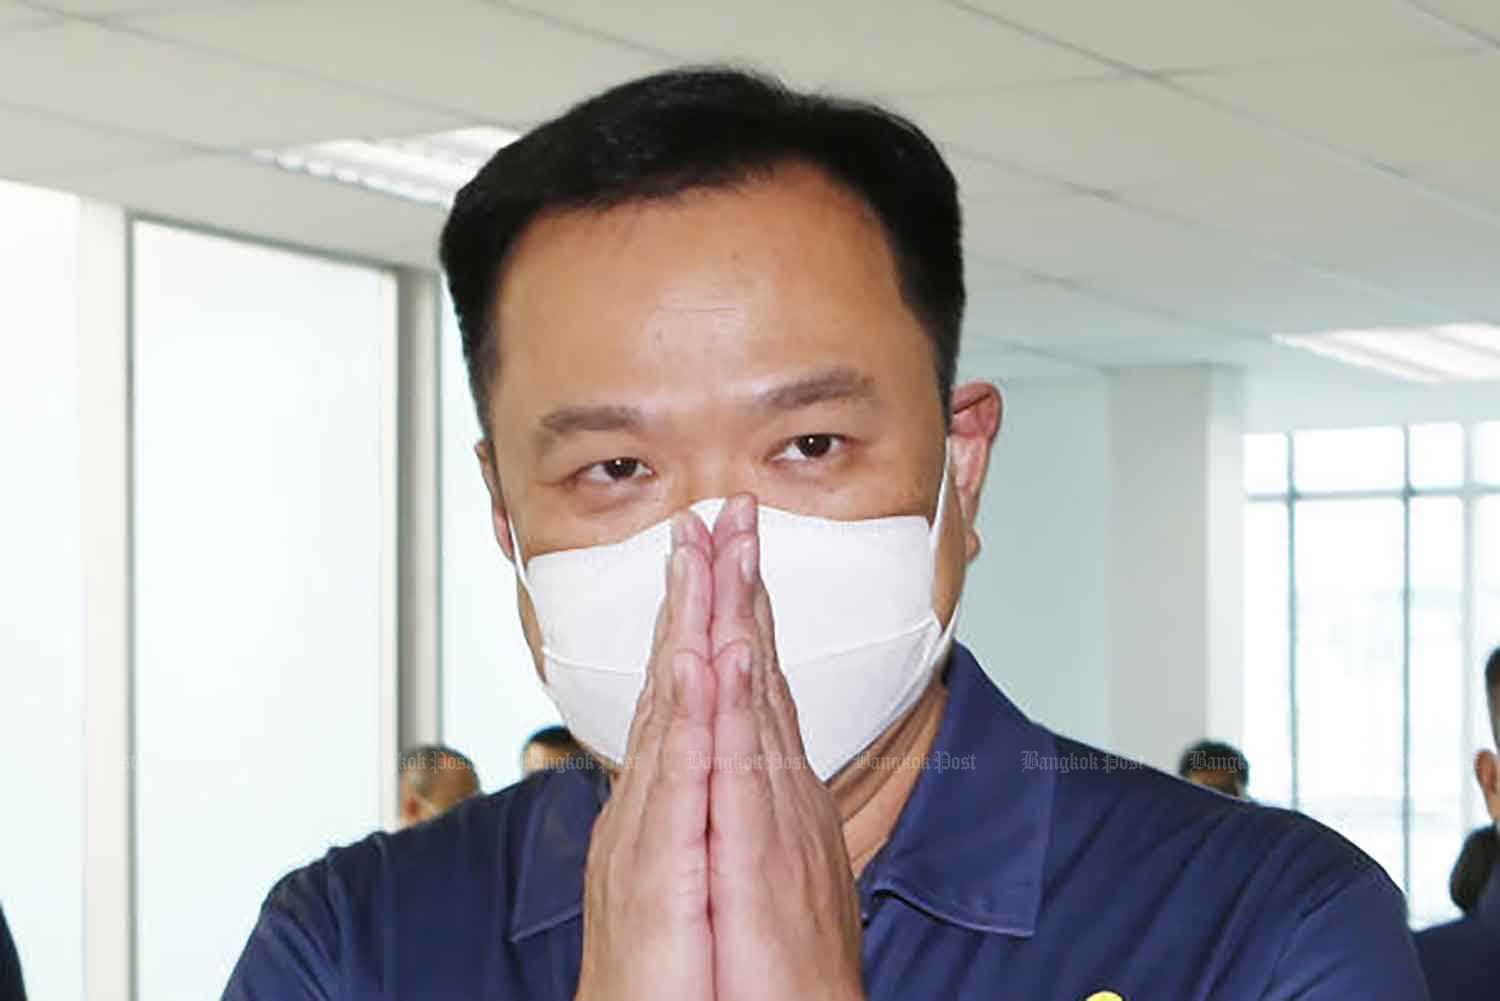 Deputy Prime Minister and Public Health Minister Anutin Charnvirakul is at the headquarters of his Bhumjaithai Party in Bangkok on Tuesday. (Photo: Apichit Jinakukl)